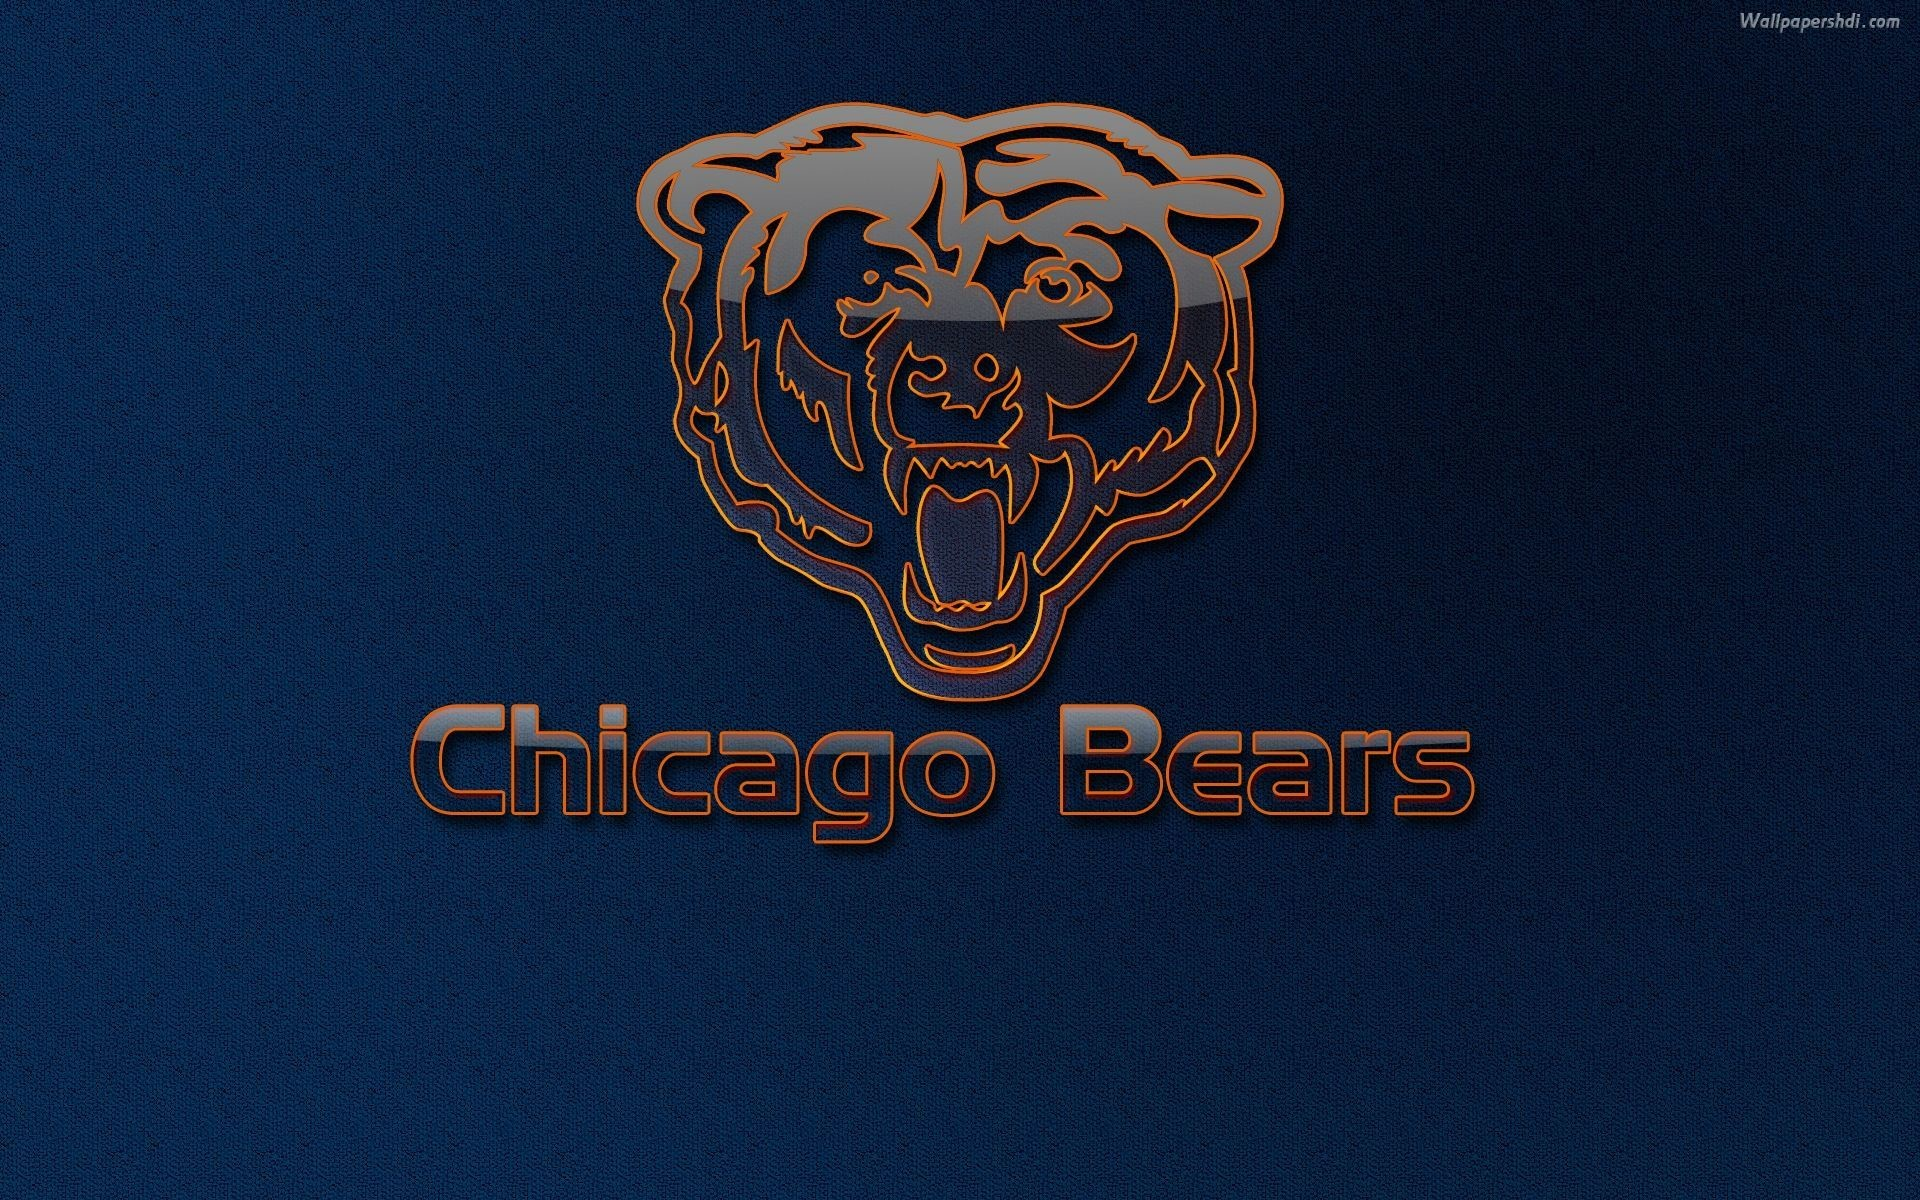 1920x1200 CHICAGO BEARS nfl football kf wallpaper